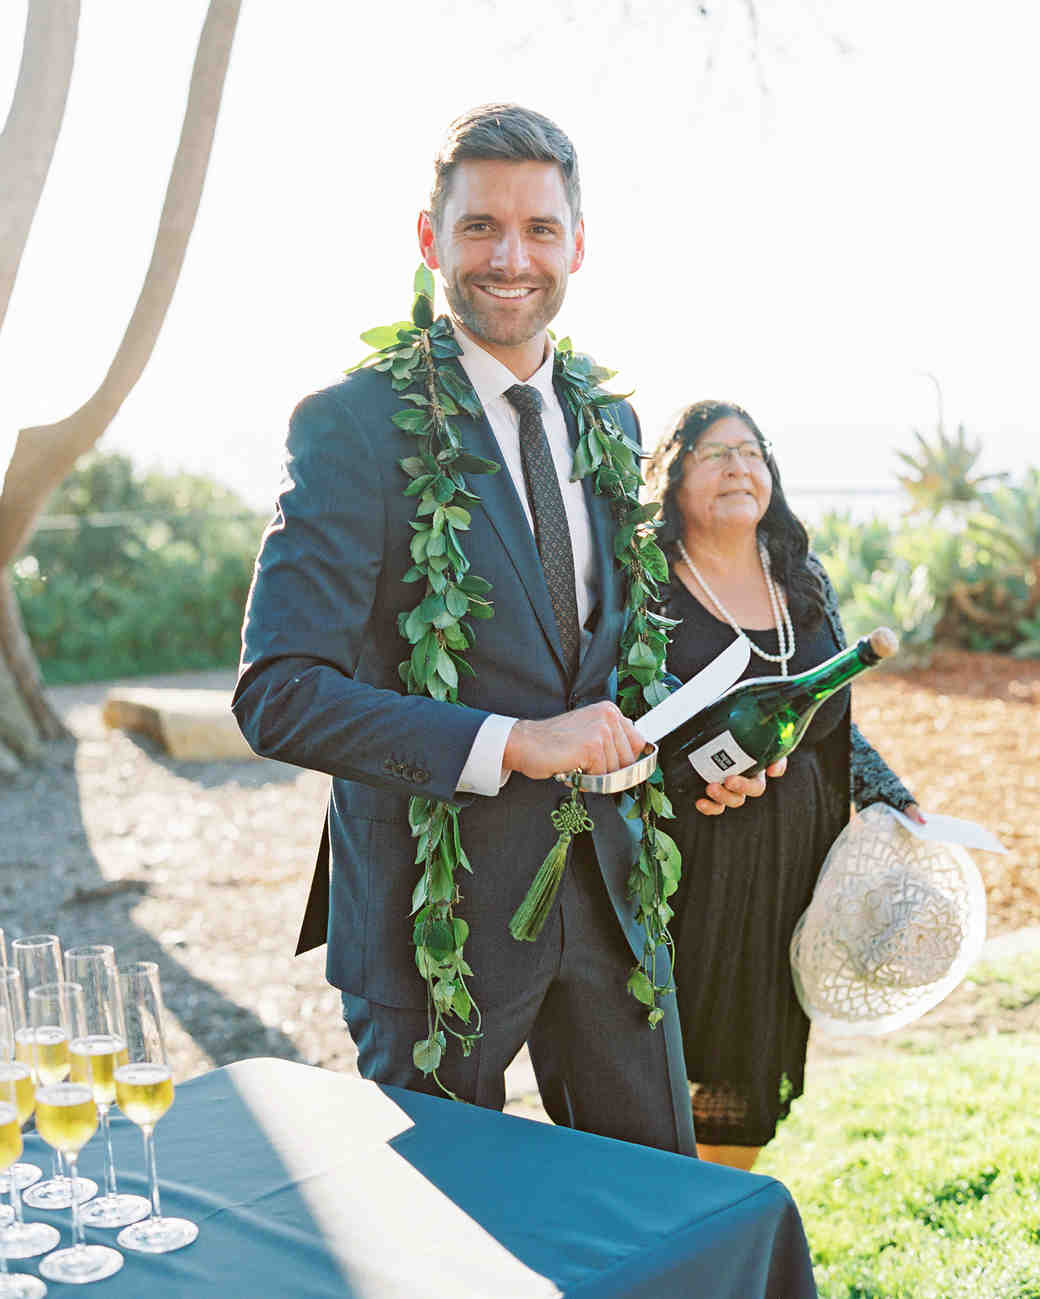 rob franco wedding saber champagne